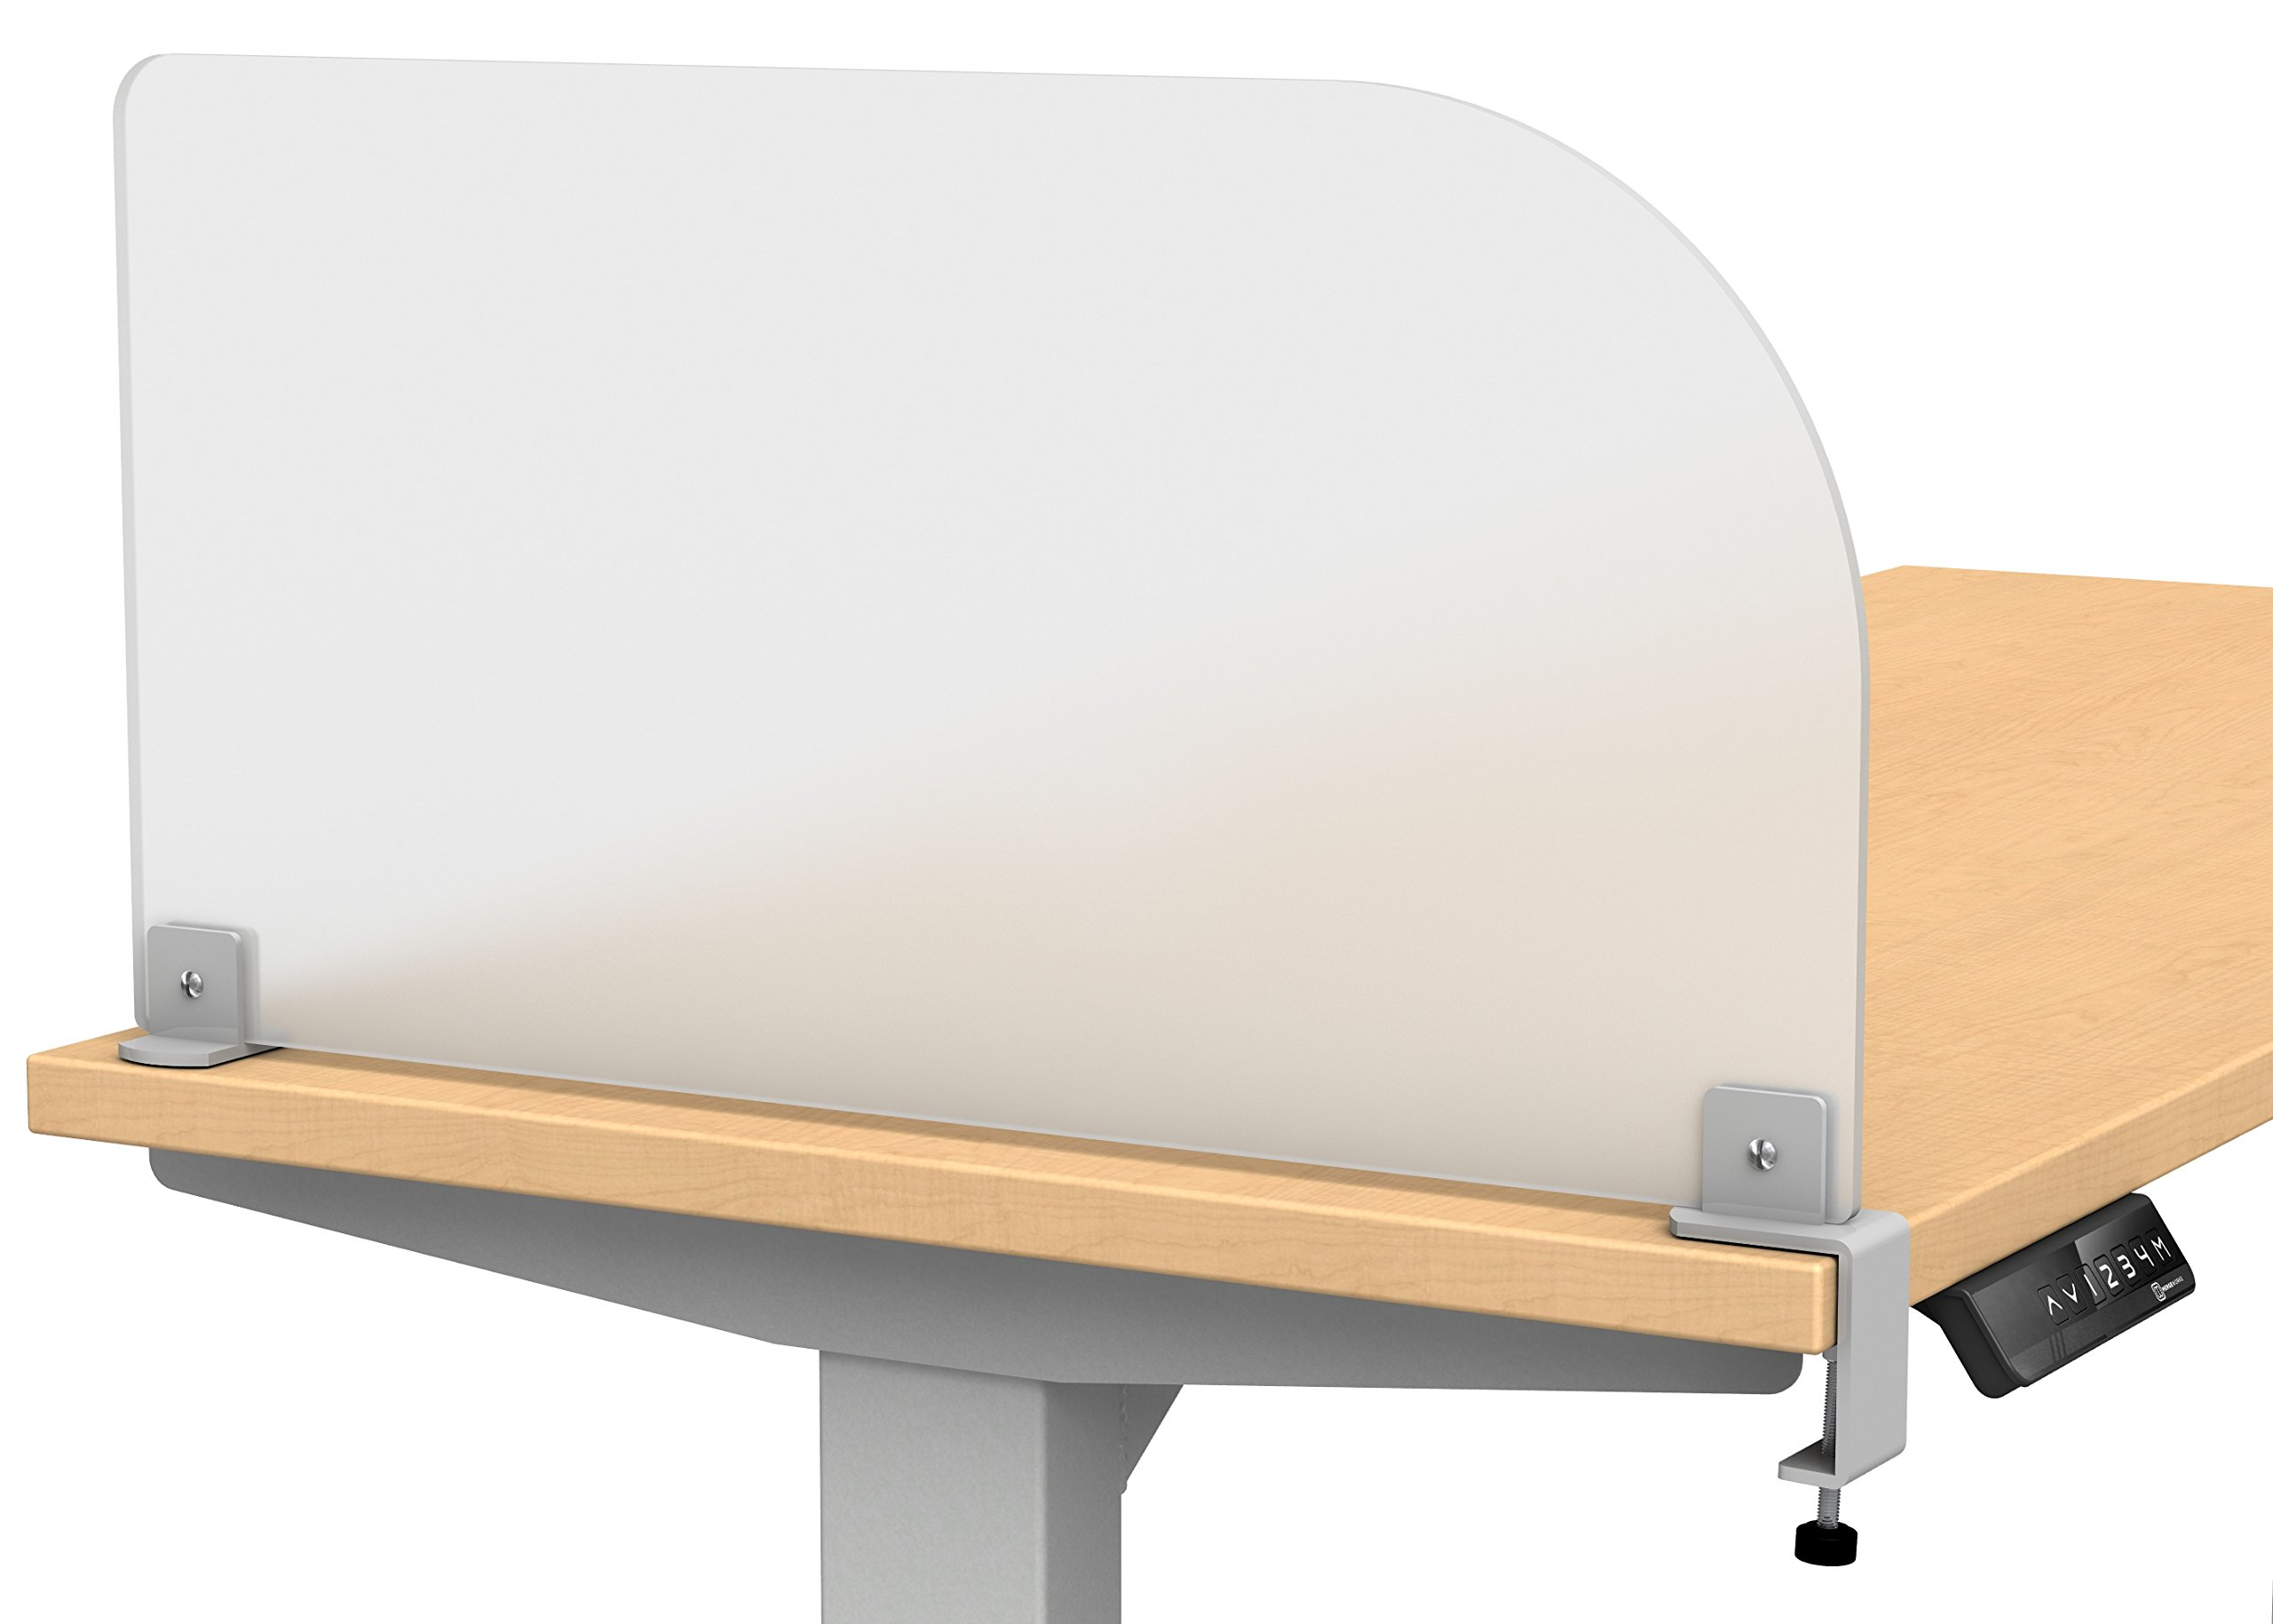 Acrylic Clamp on Privacy Desk Divider Size: 12'' H x 23'' W